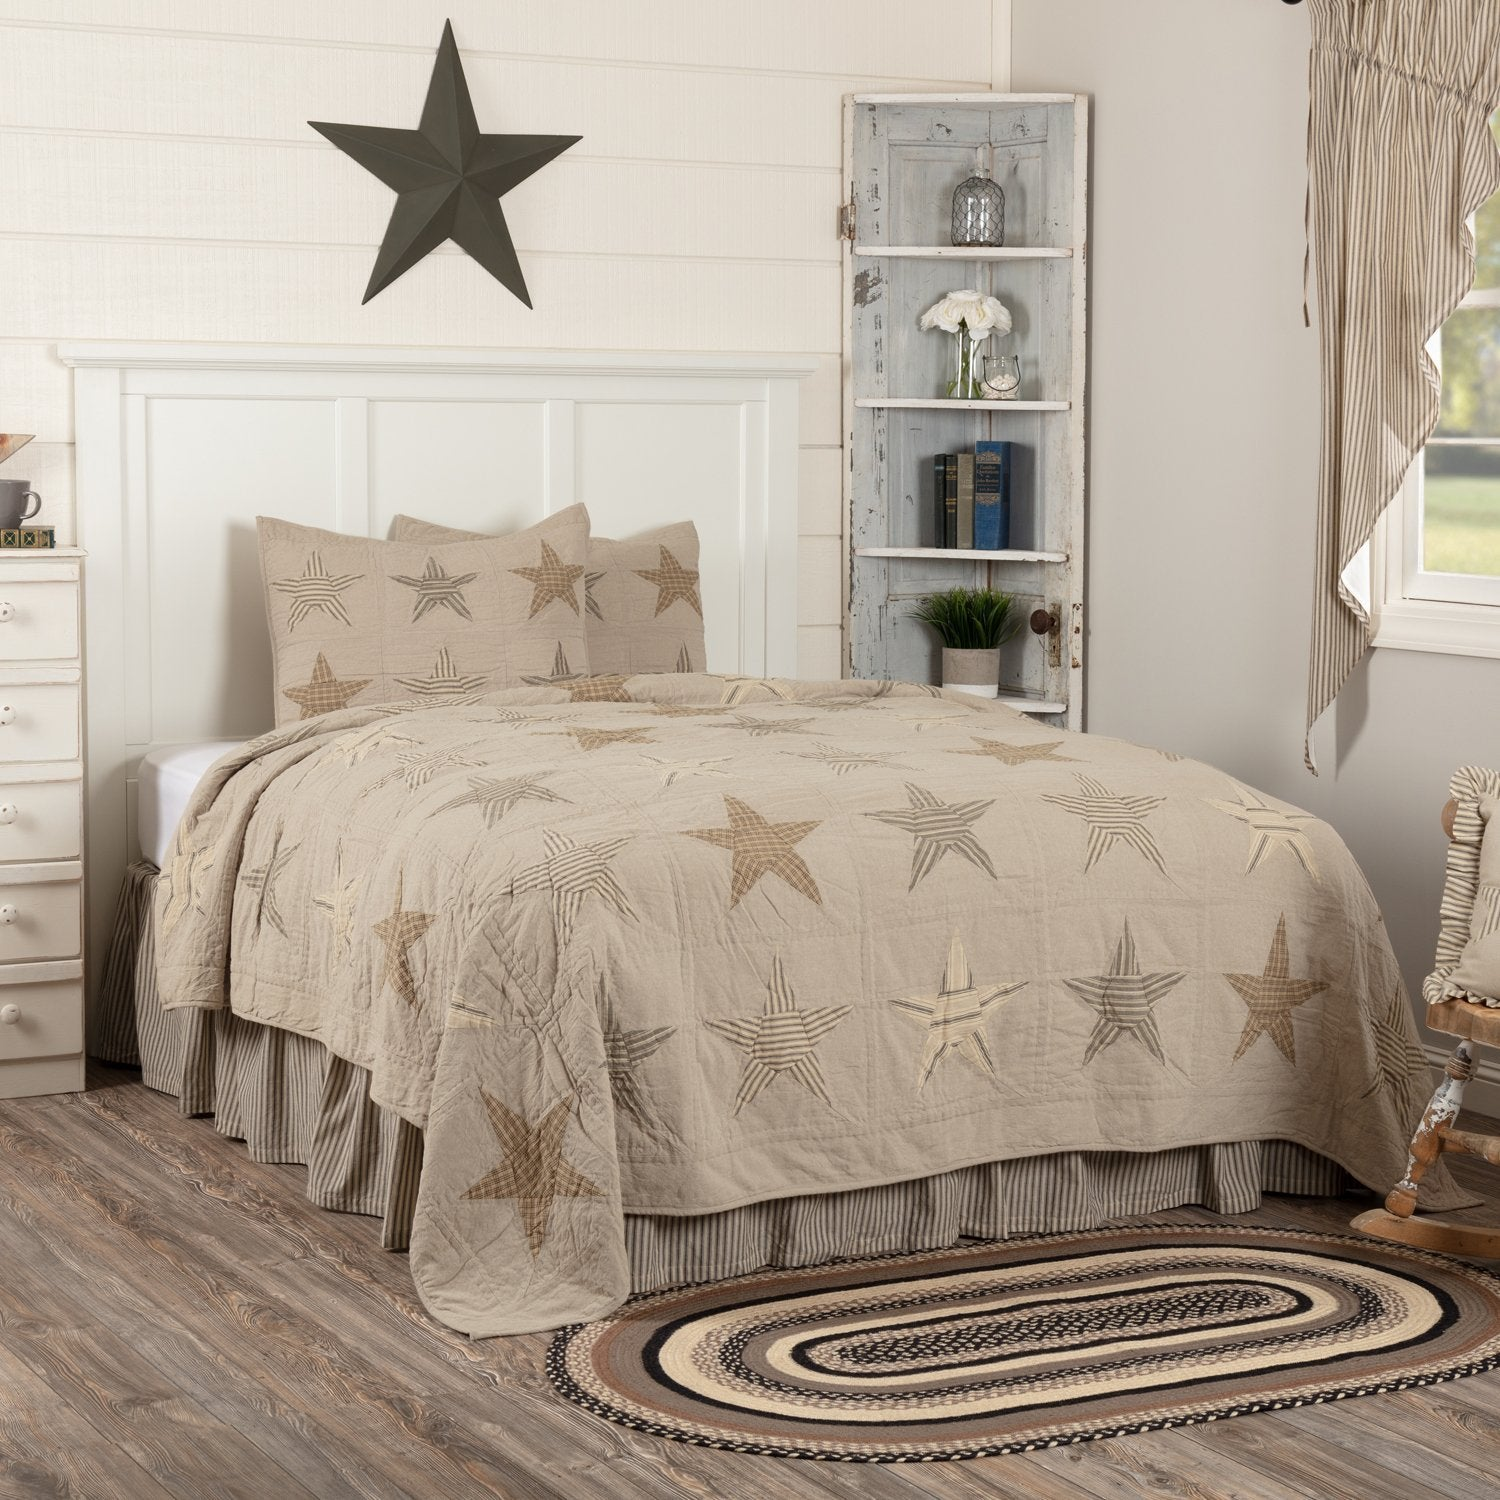 Sawyer Mill Star Charcoal Quilt.